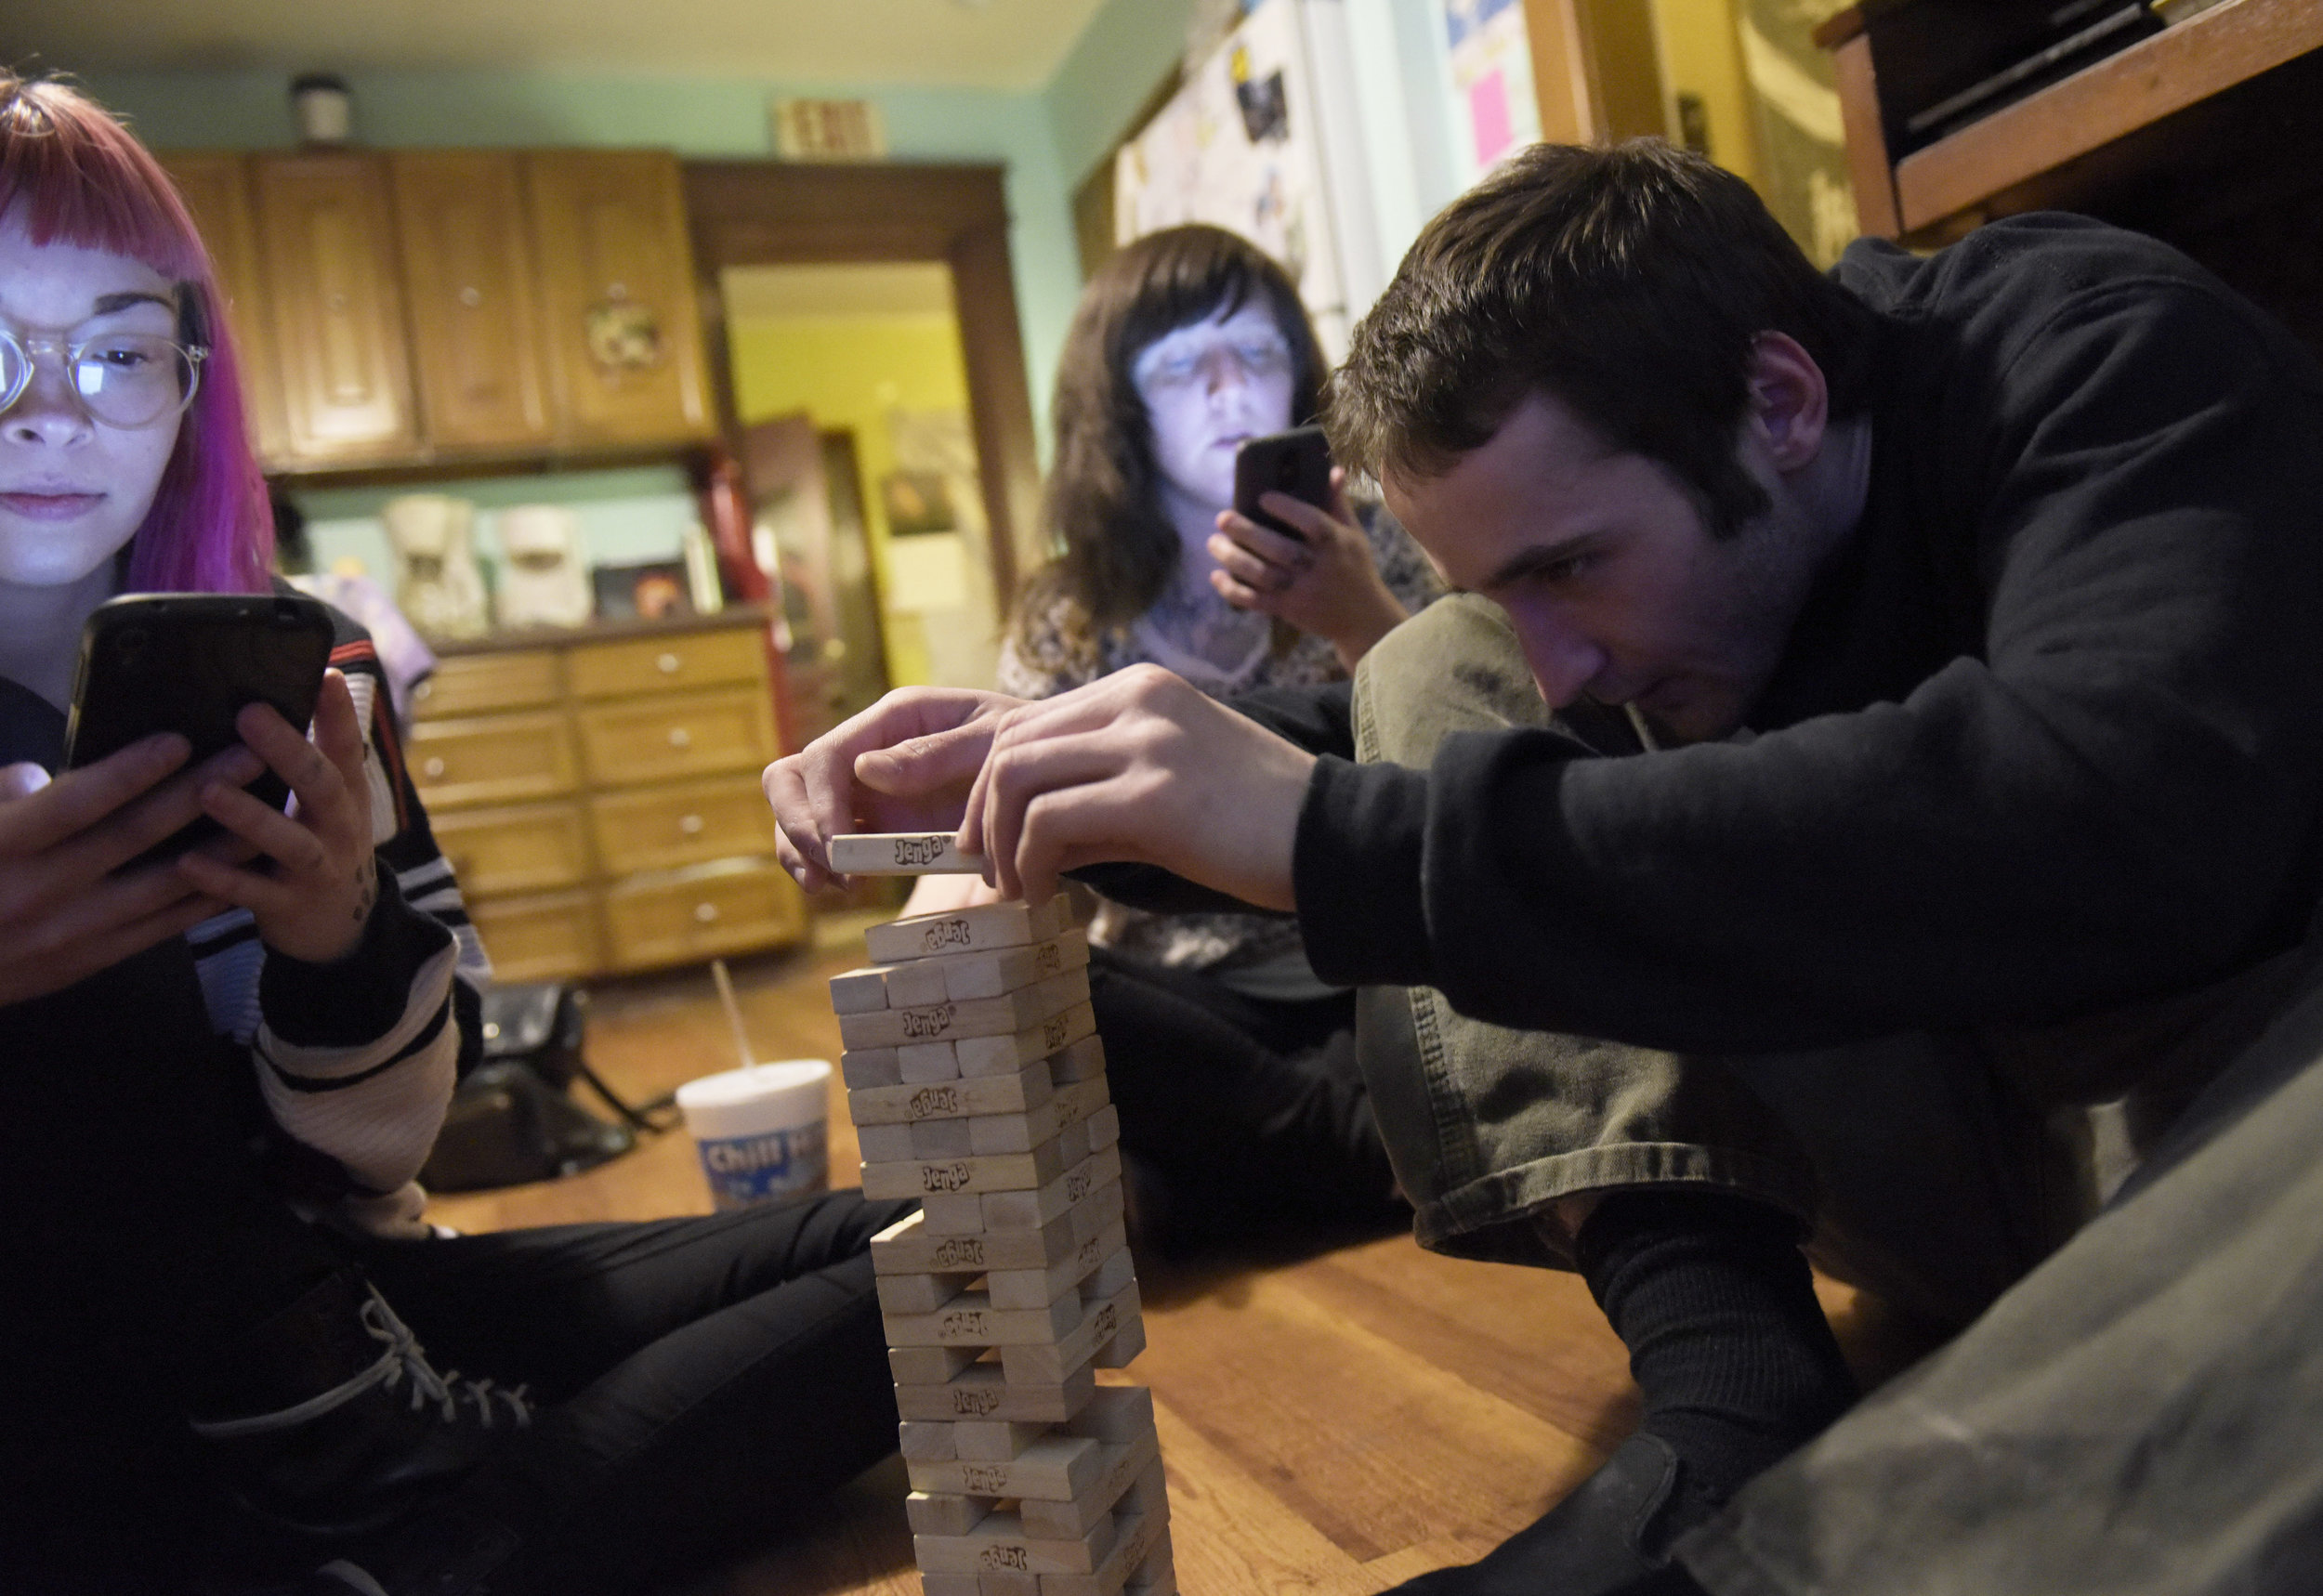 "(From left) Briana, Alyssa and George play Jenga one evening. At this point, Alyssa had been sober for five weeks. Before getting sober, she was throwing up blood and blacking out multiple times a week. A doctor told her that she has a genetic disease she inherited from her mother and if she didn't stop drinking, she would be throwing up blood for the rest of her life. Alyssa is thankful that giving up alcohol hasn't been as hard as she thought and she is appreciative of her friends' support. ""I wouldn't be as healthy I am without the people I surround myself with."""